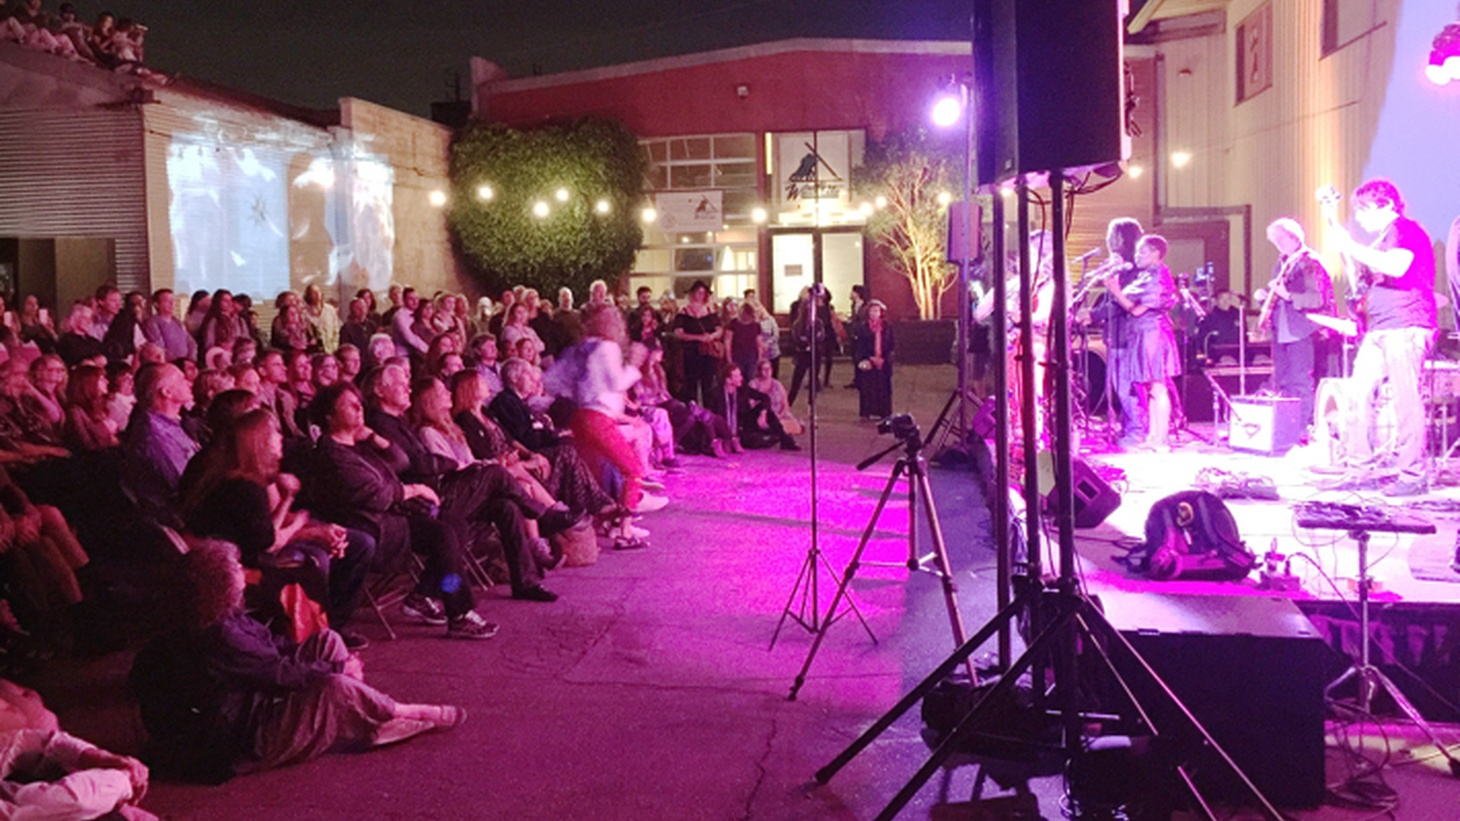 Edward Goldman shares his thoughts on the uniquely captivating art event that took place at Bergamot Station this past Saturday.